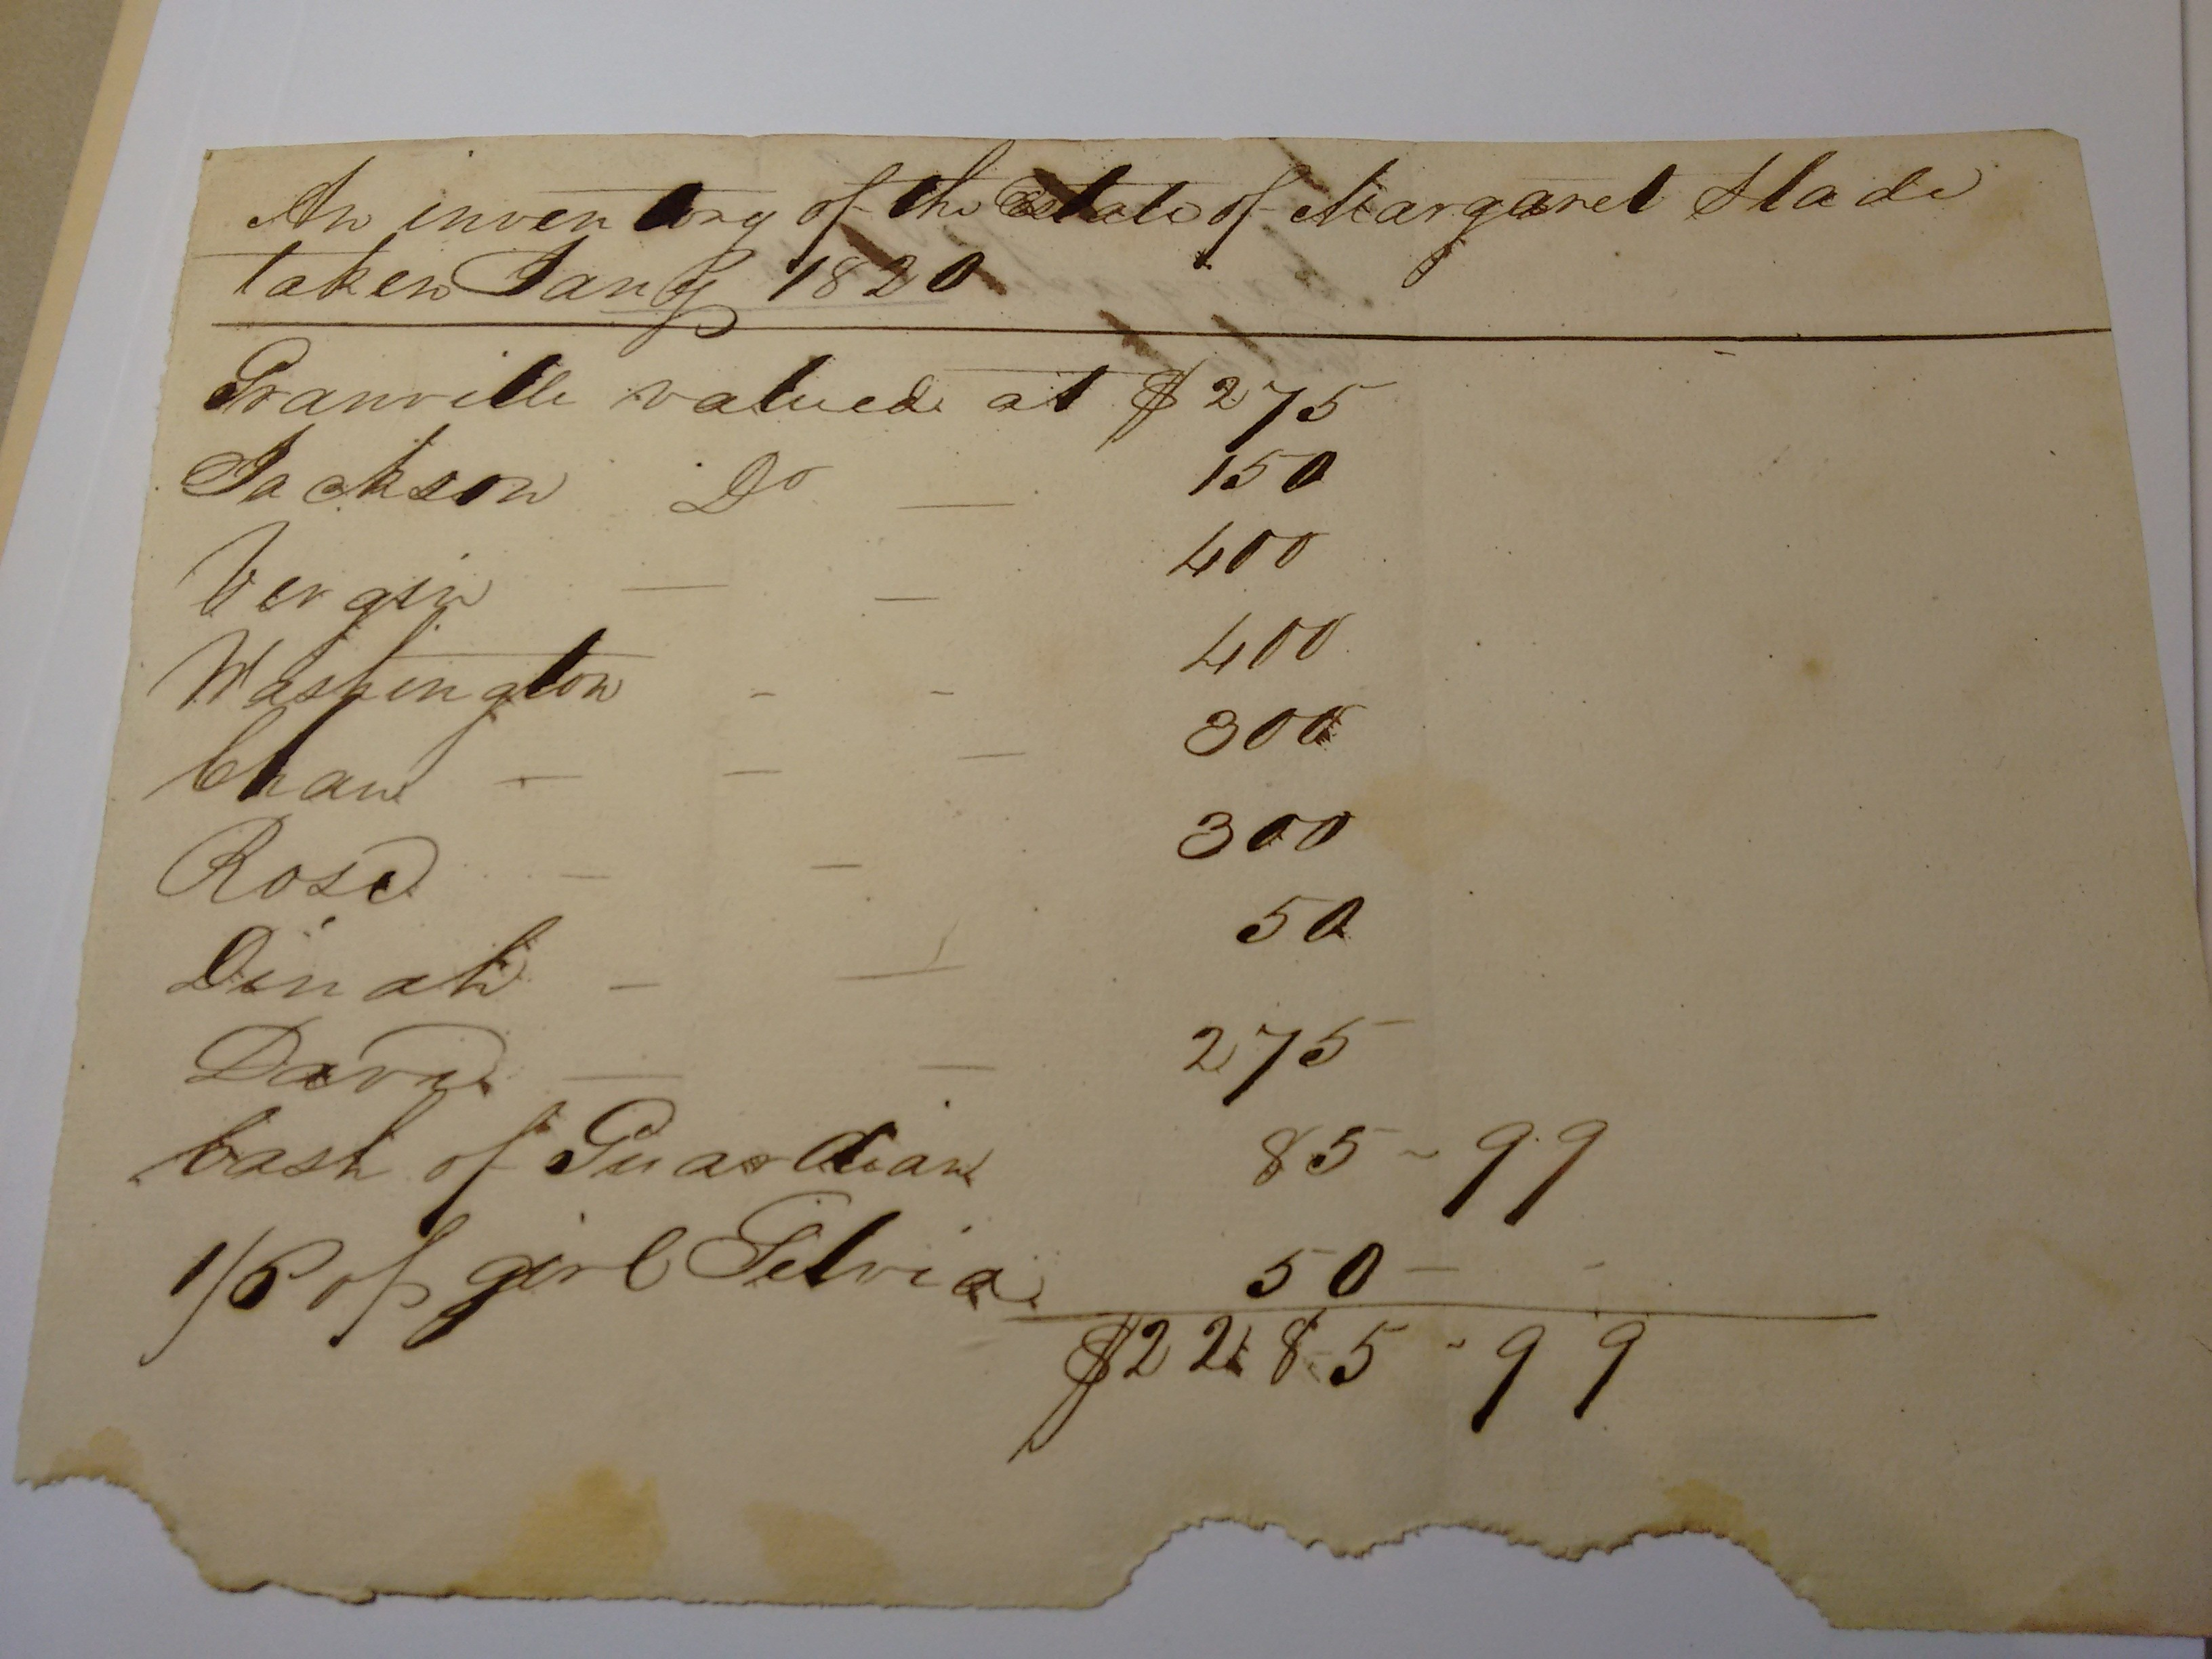 Slave valuation, 1820, in the Slade Family Papers